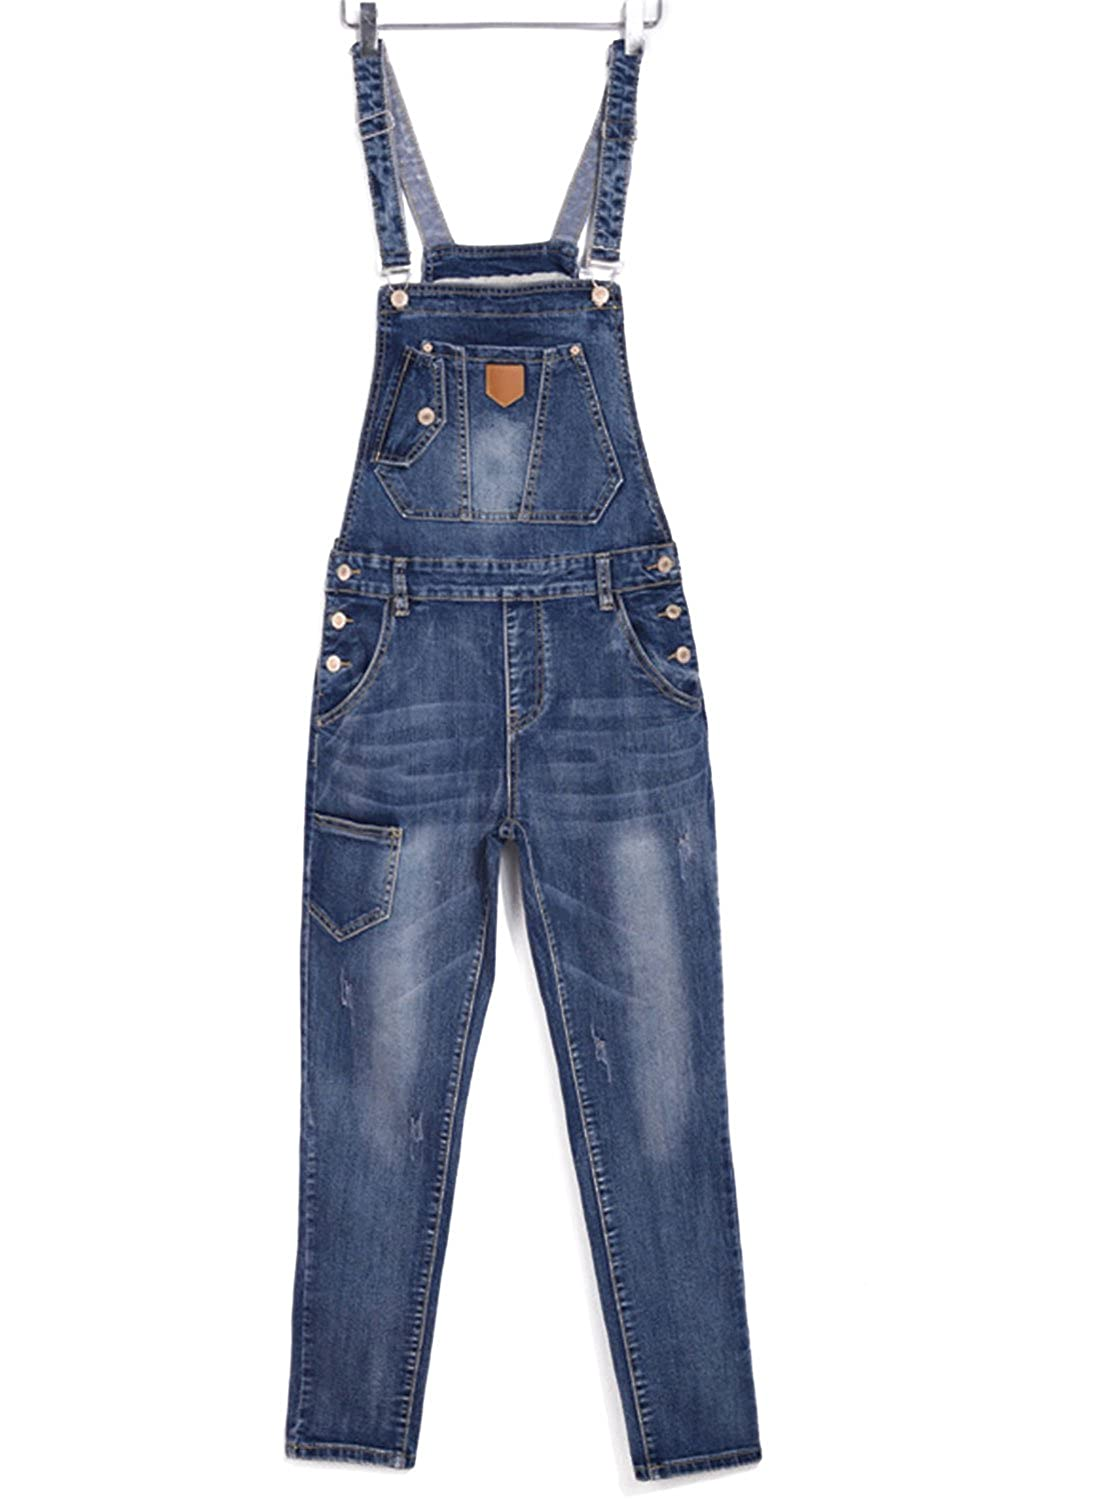 LEO BON Womens Casual Denim Bib Overall Triangle Pattern Patch Adjustable Strap Trousers KF-LSZYF-085